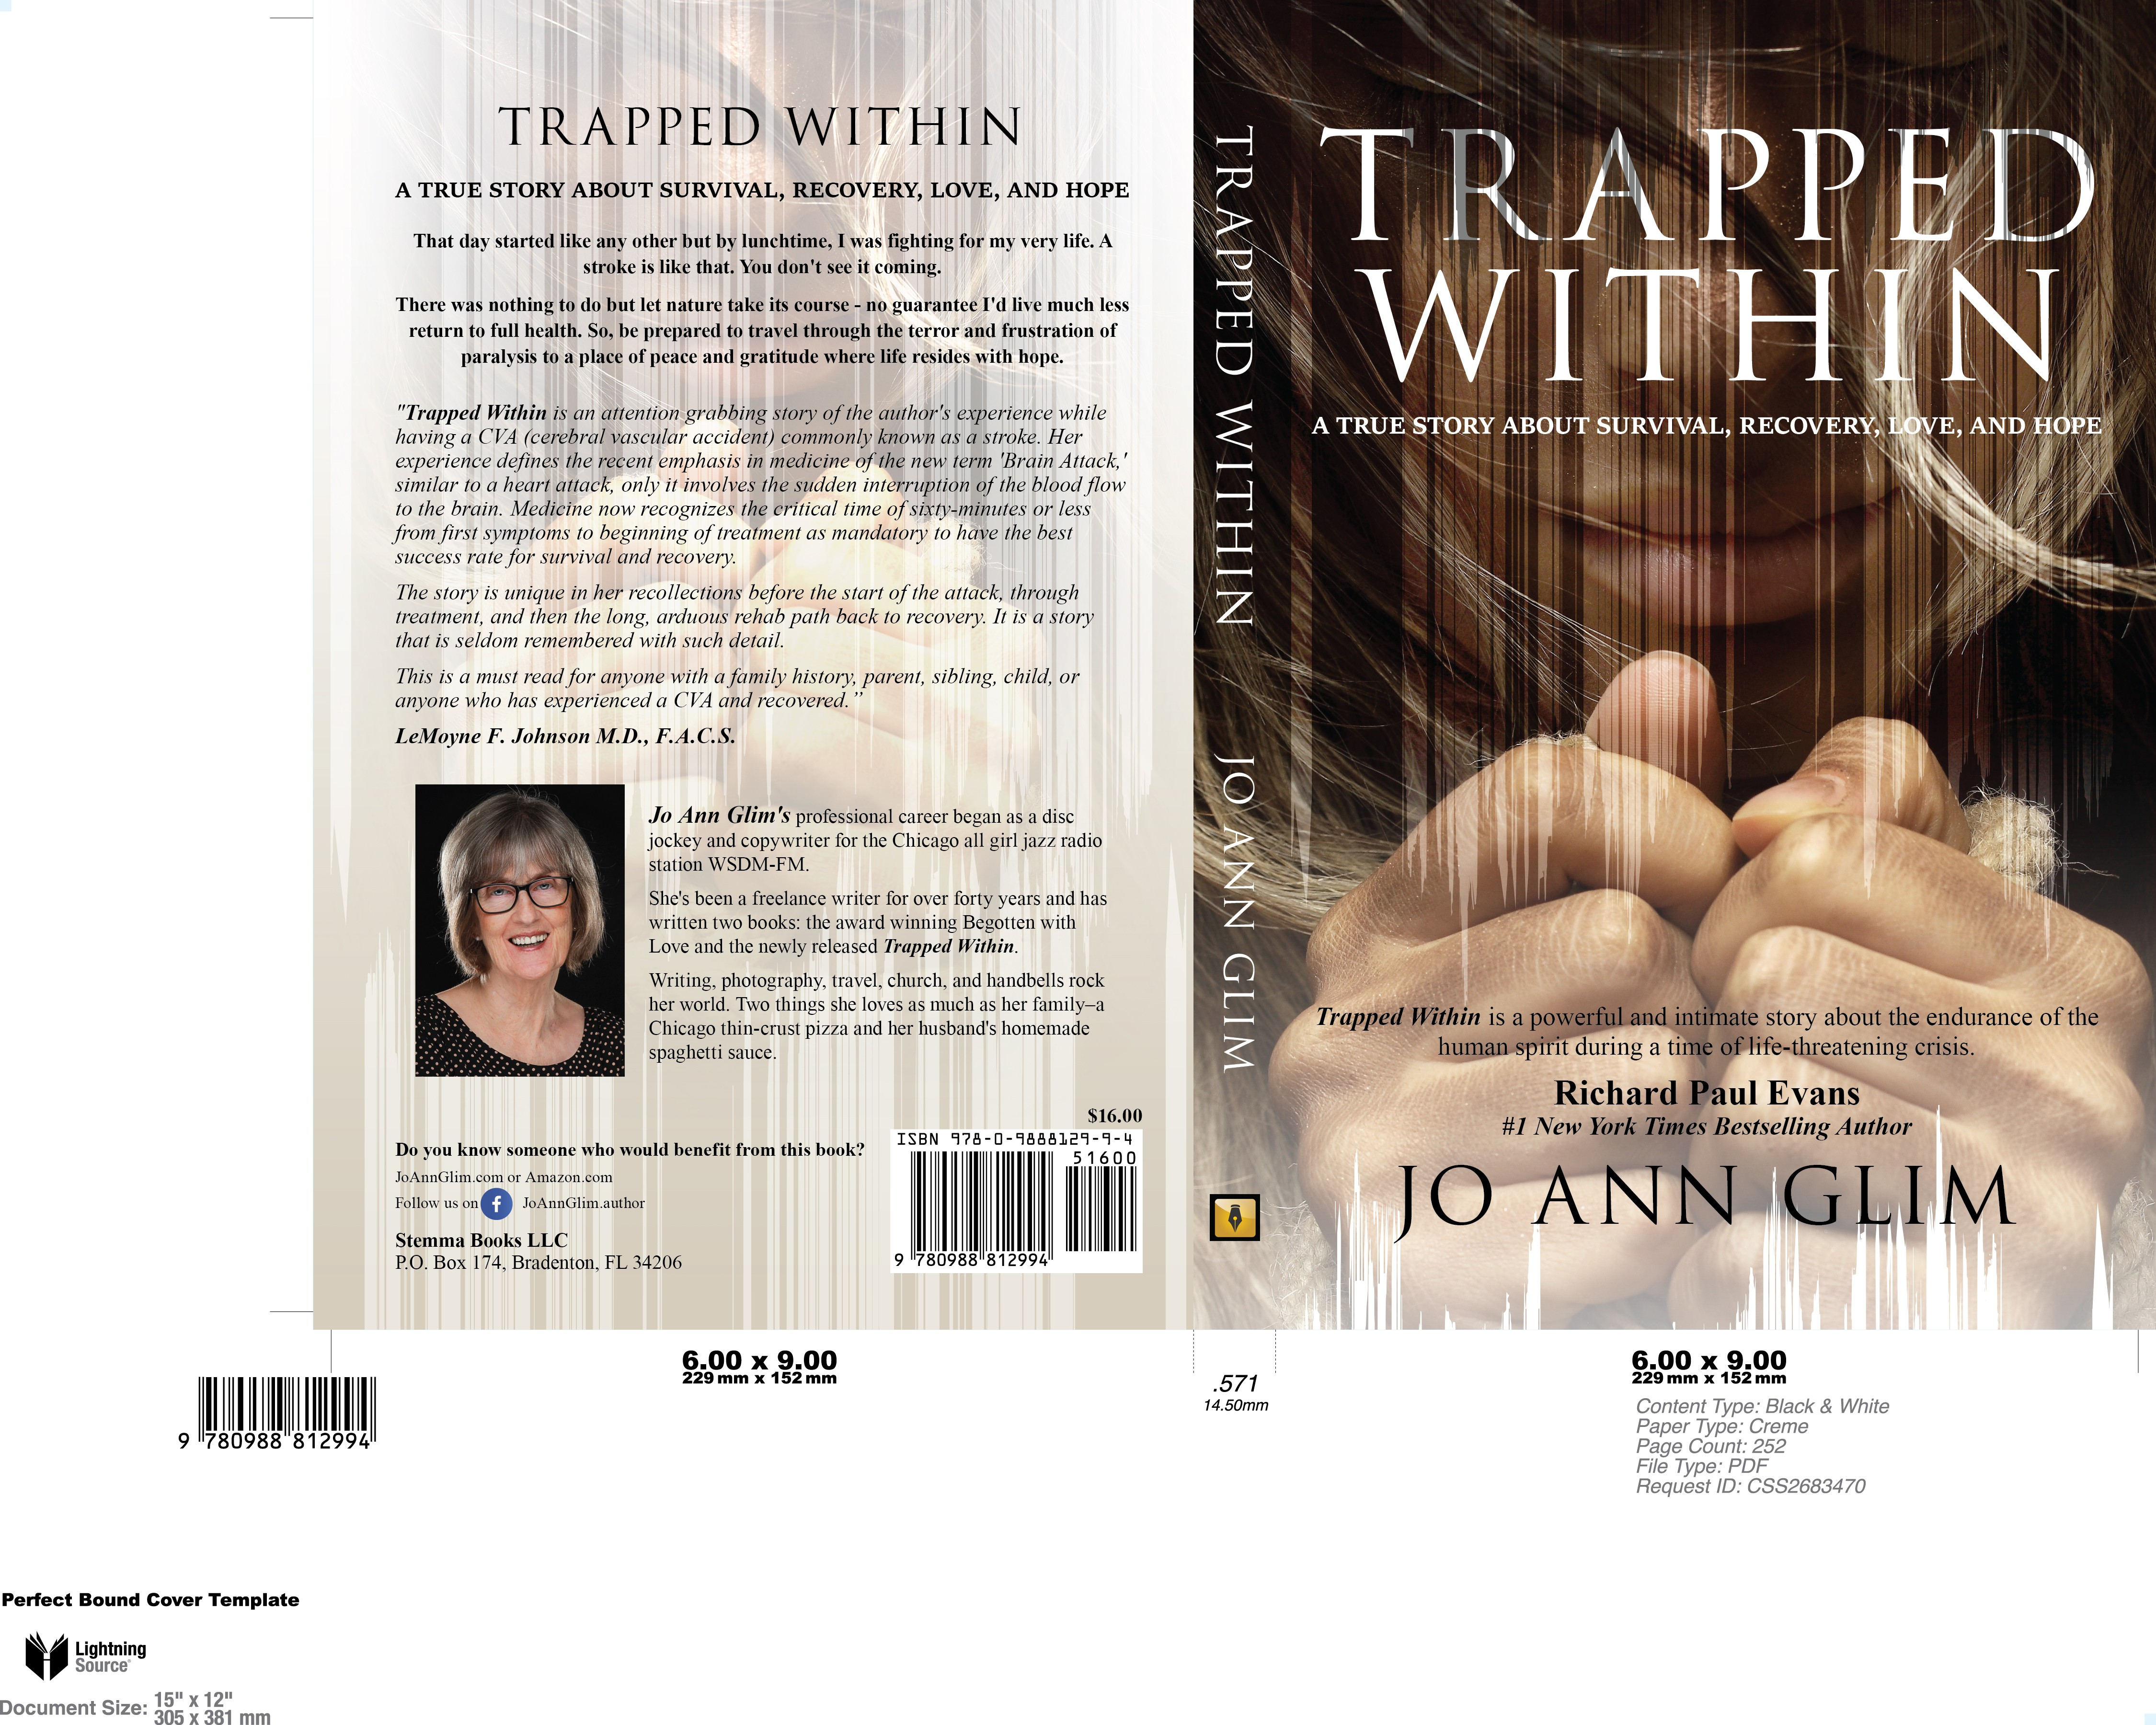 Trapped Within